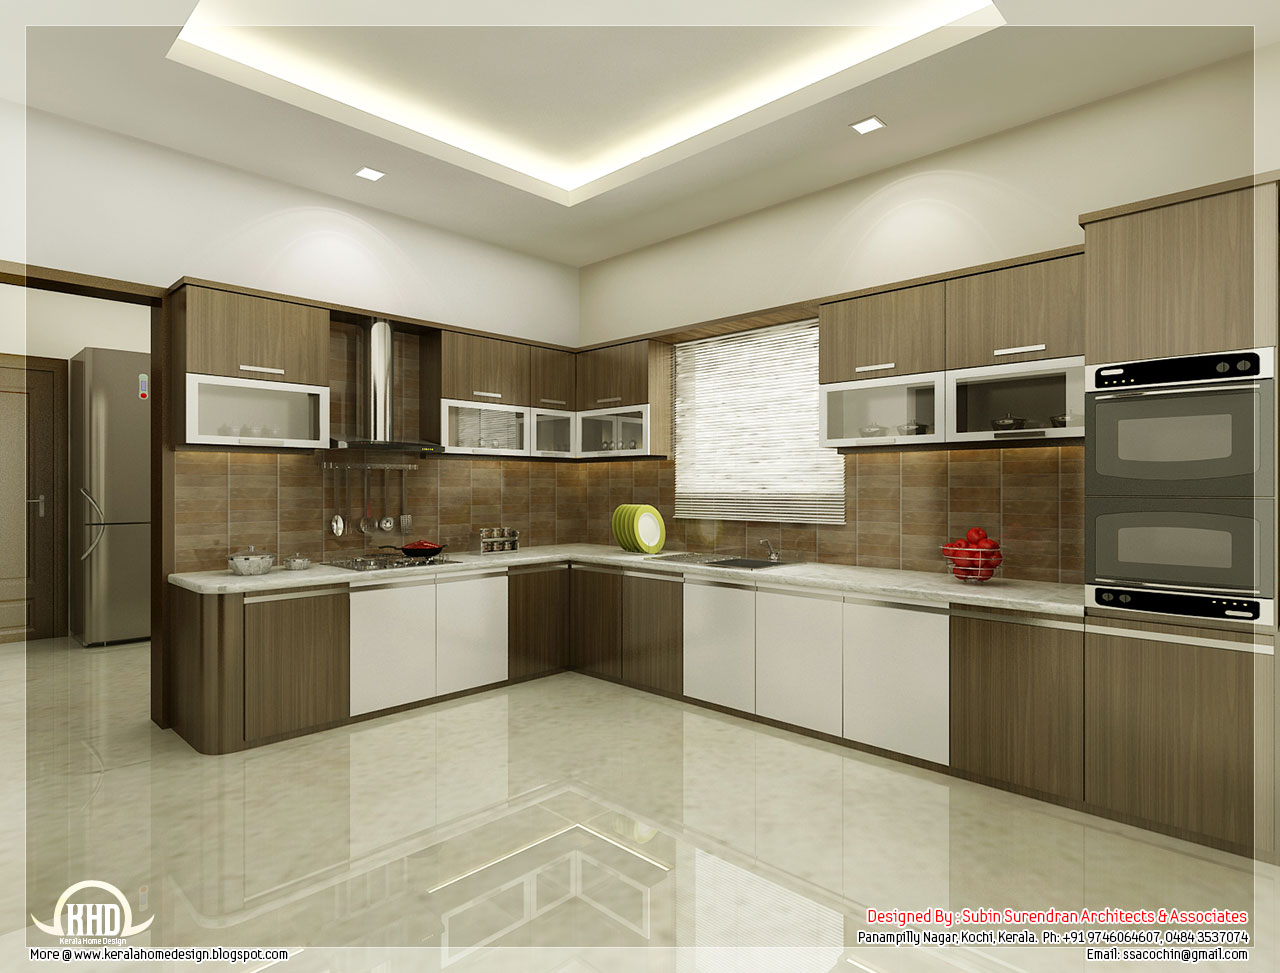 White Model Kitchen Interior photo - 2